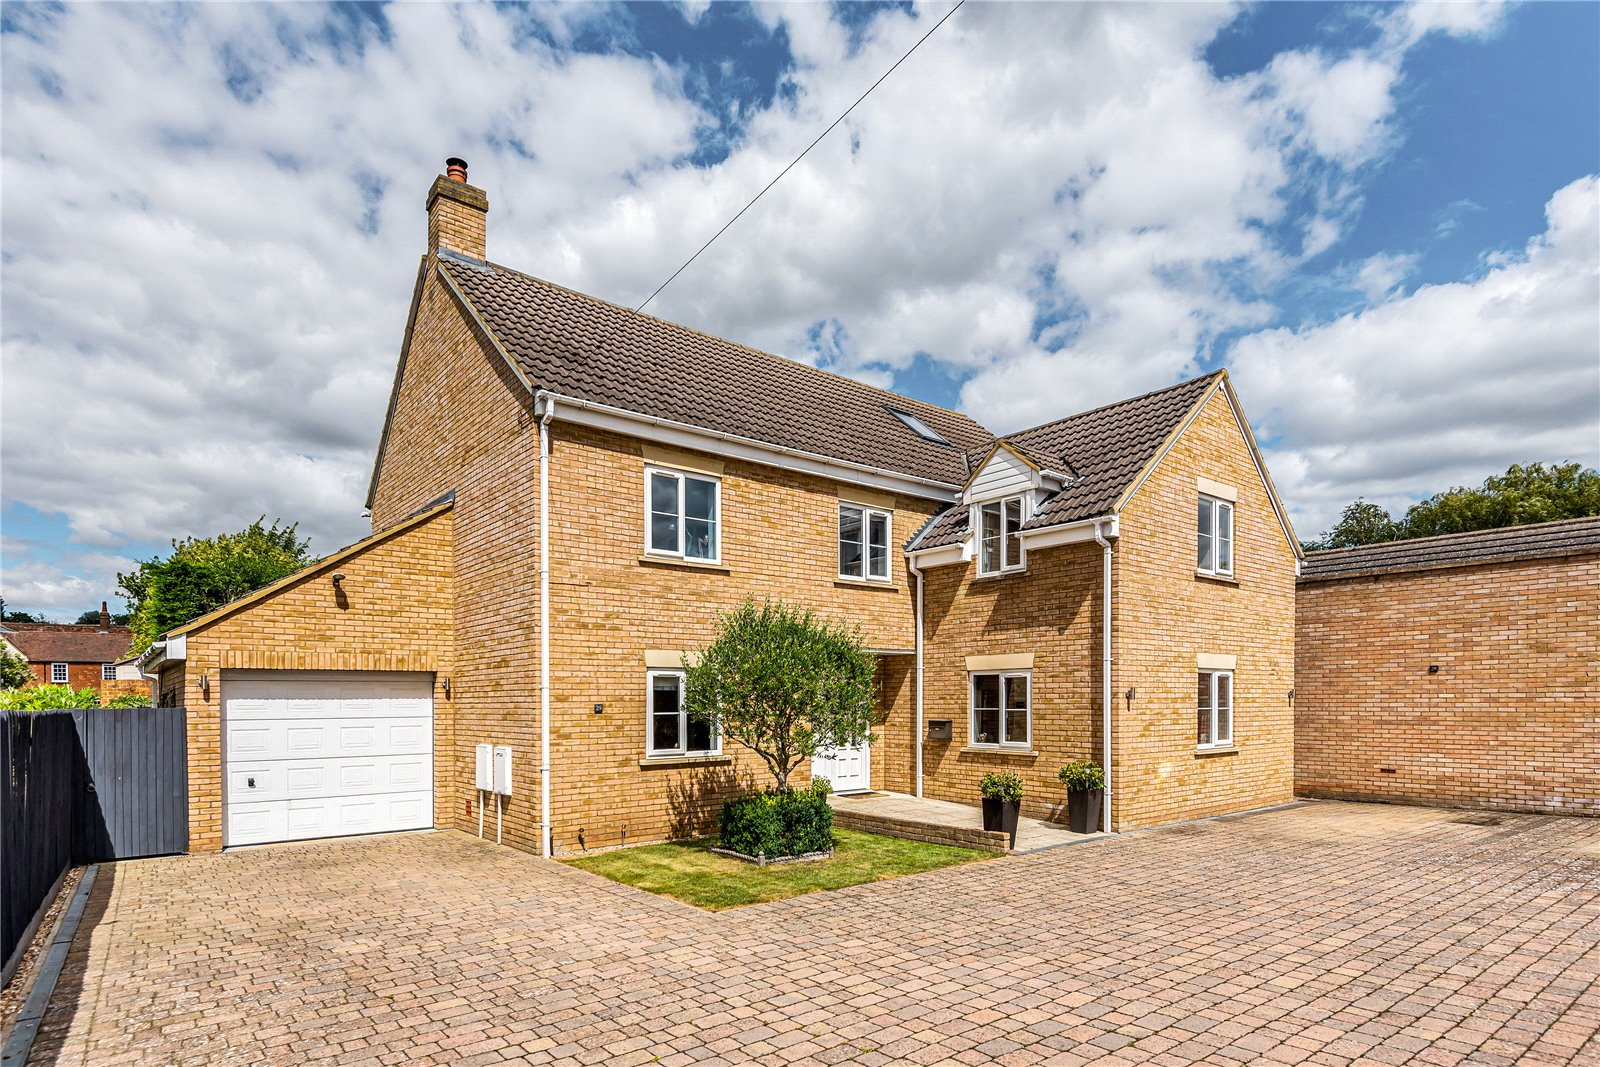 5 bed  for sale in Hunts End, Buckden, PE19